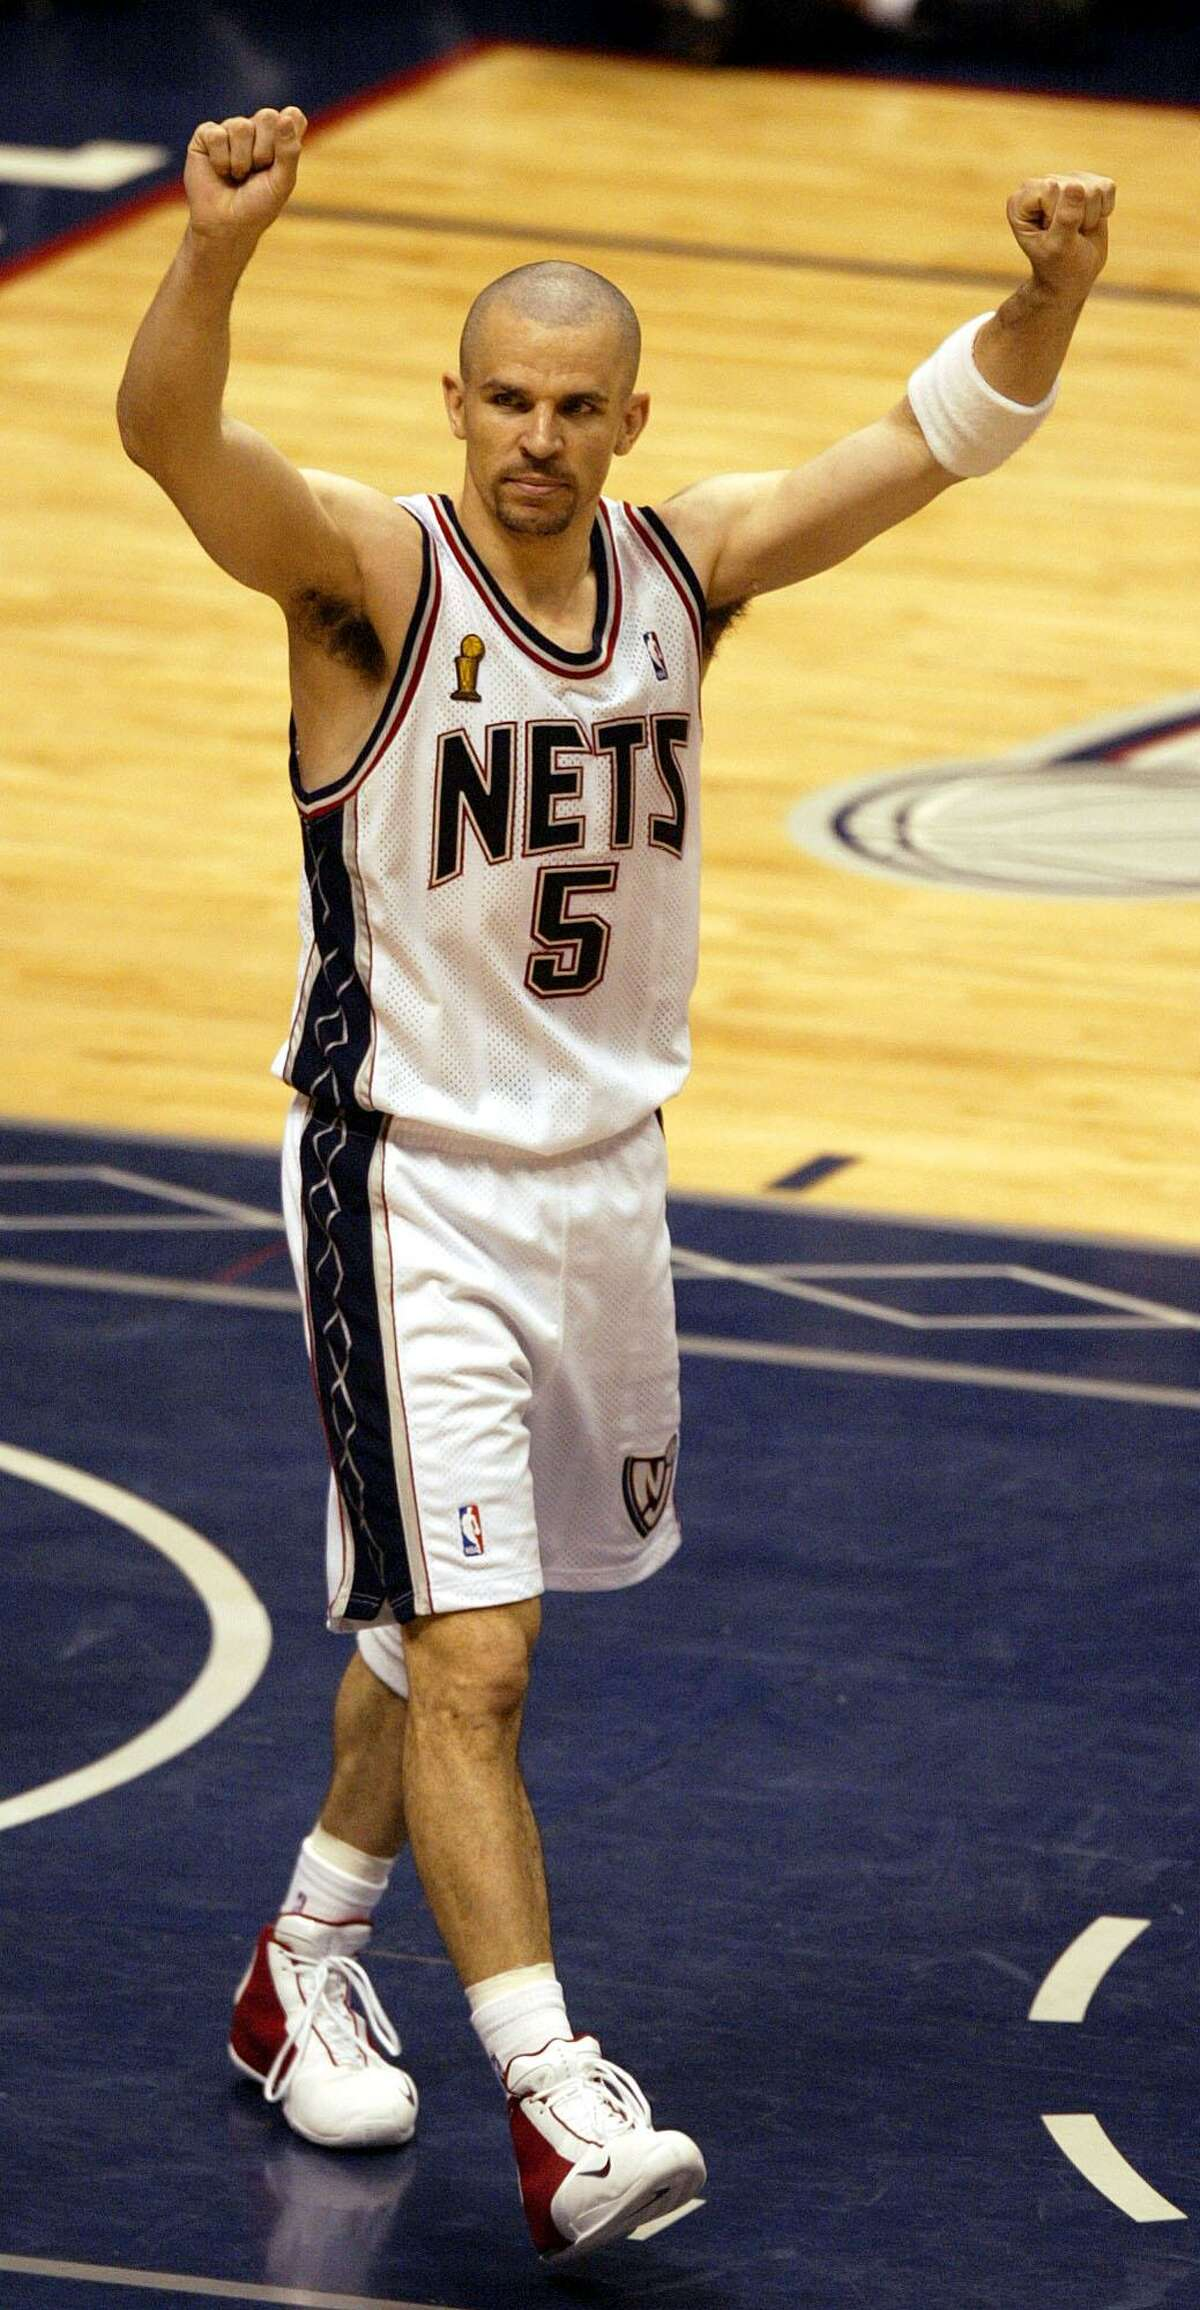 New Jersey Nets' Jason Kidd celebrates the Nets 77-76 win over the San Antonio Spurs' during Game 4 of the NBA Finals Wednesday, June 11, 2003 in East Rutherford, NJ. (AP Photo/Miles Kennedy)